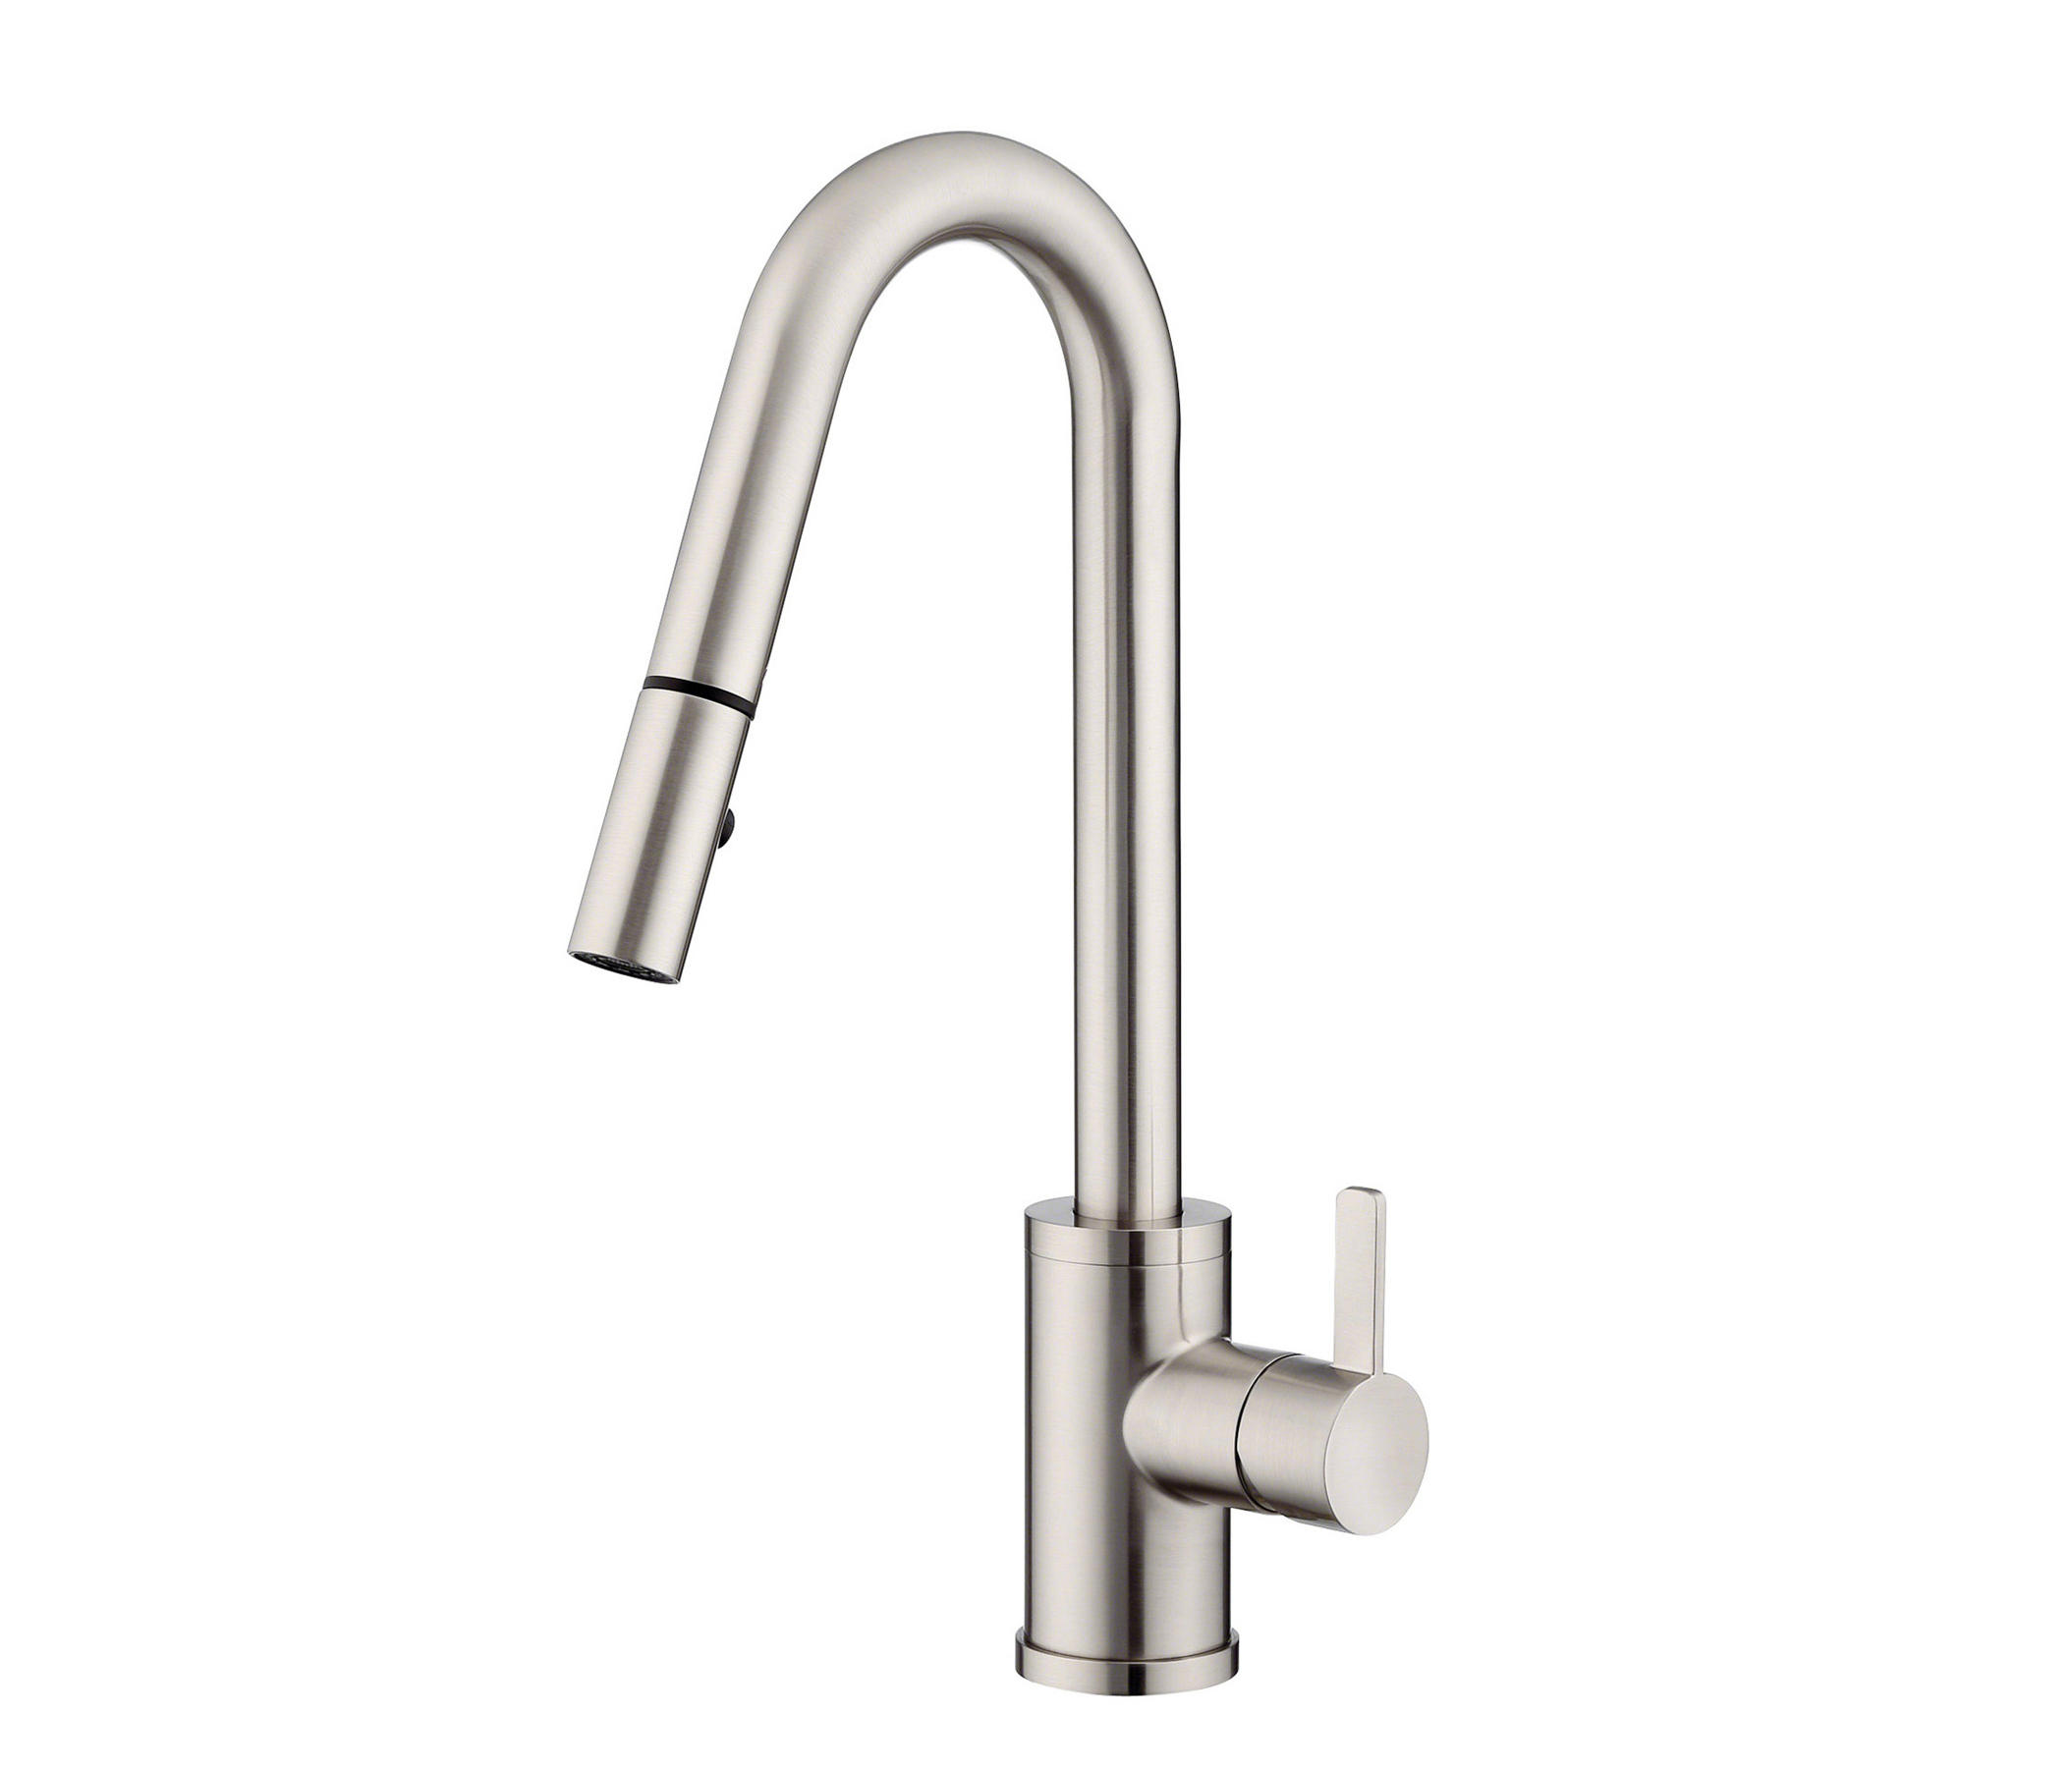 Exceptionnel Amalfi™ | Single Handle Pull Down Kitchen Faucet, 1.75gpm By Danze |